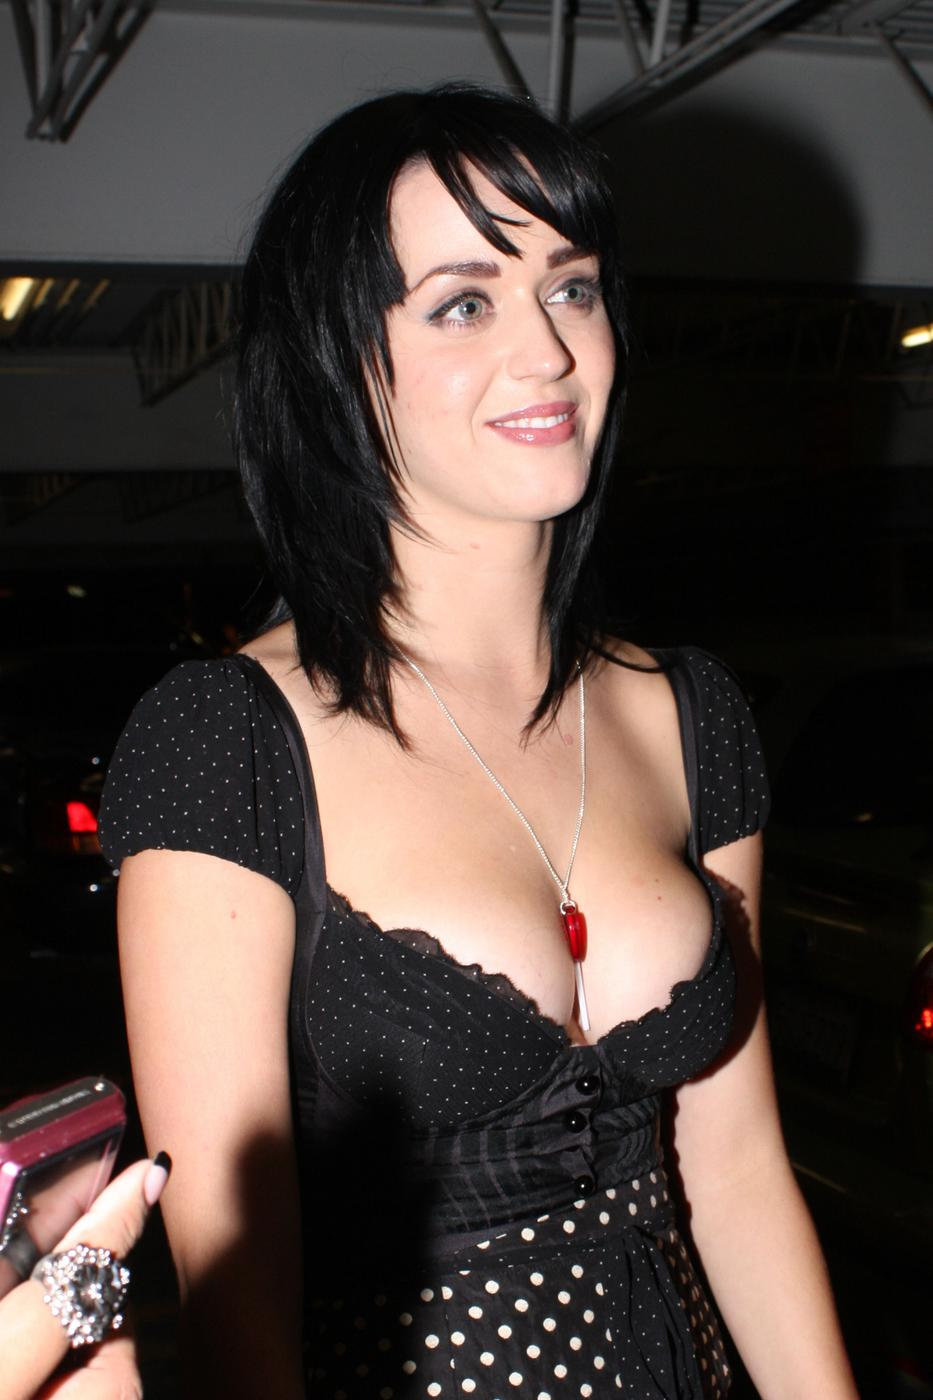 Moamoo blog katy perry sexy for Hot images blog